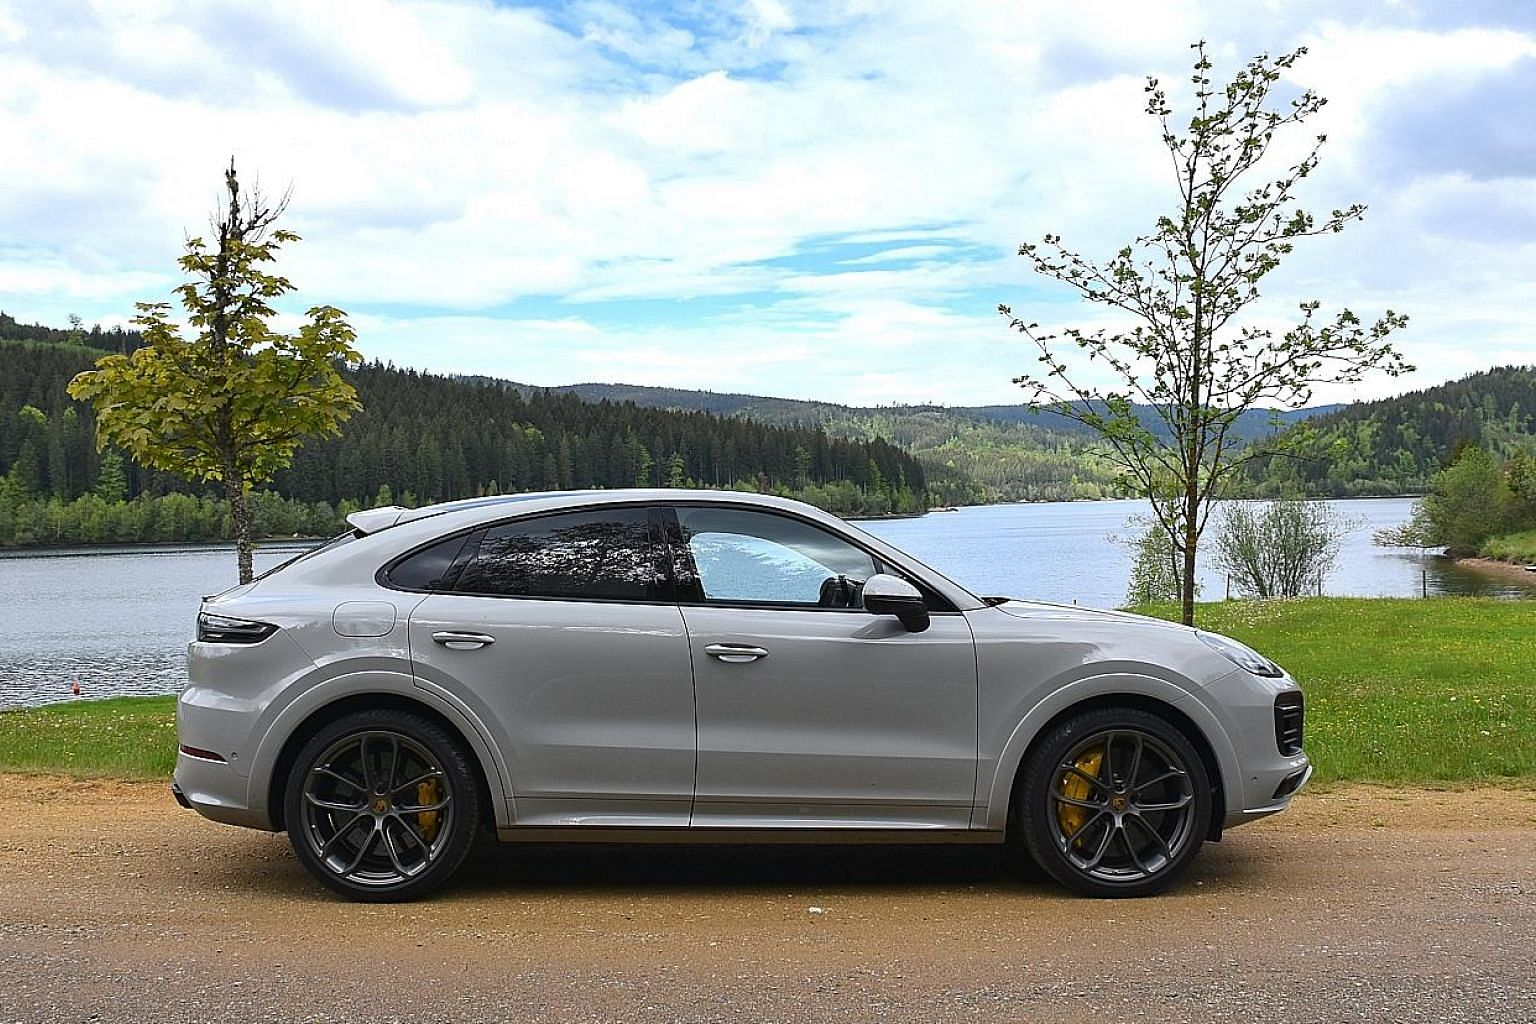 The Porsche Cayenne S Coupe packs a twin-turbocharged V6 engine with an output of 434hp.